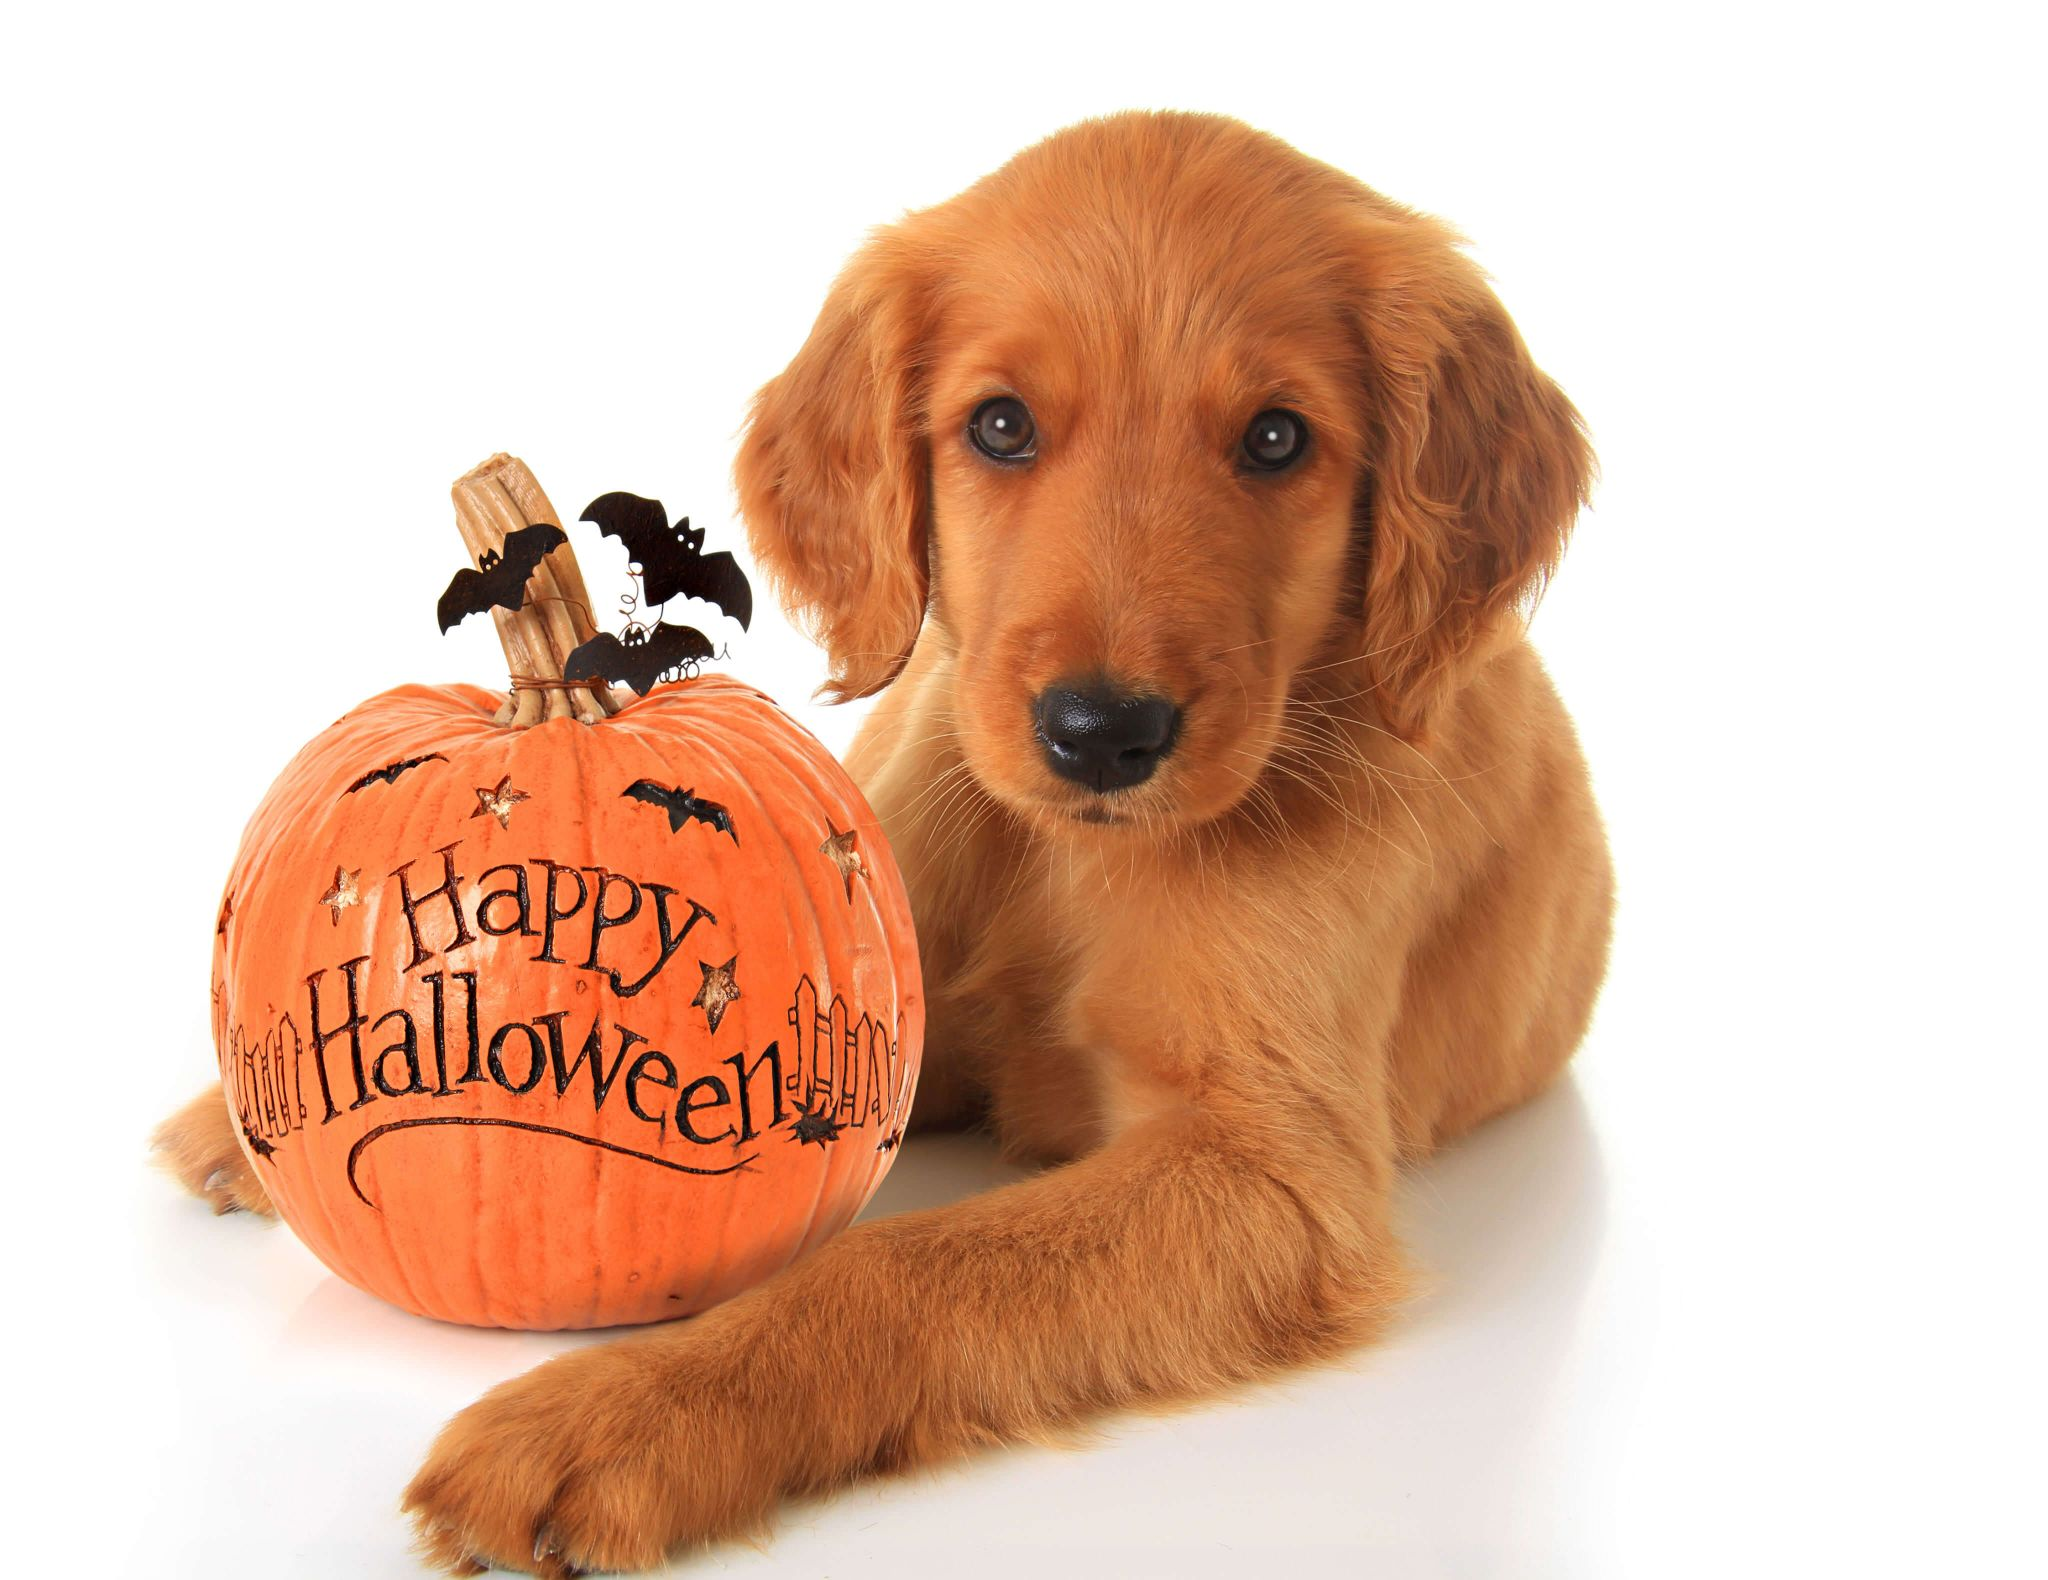 pet anxiety - labrador puppy with a happy halloween ornament